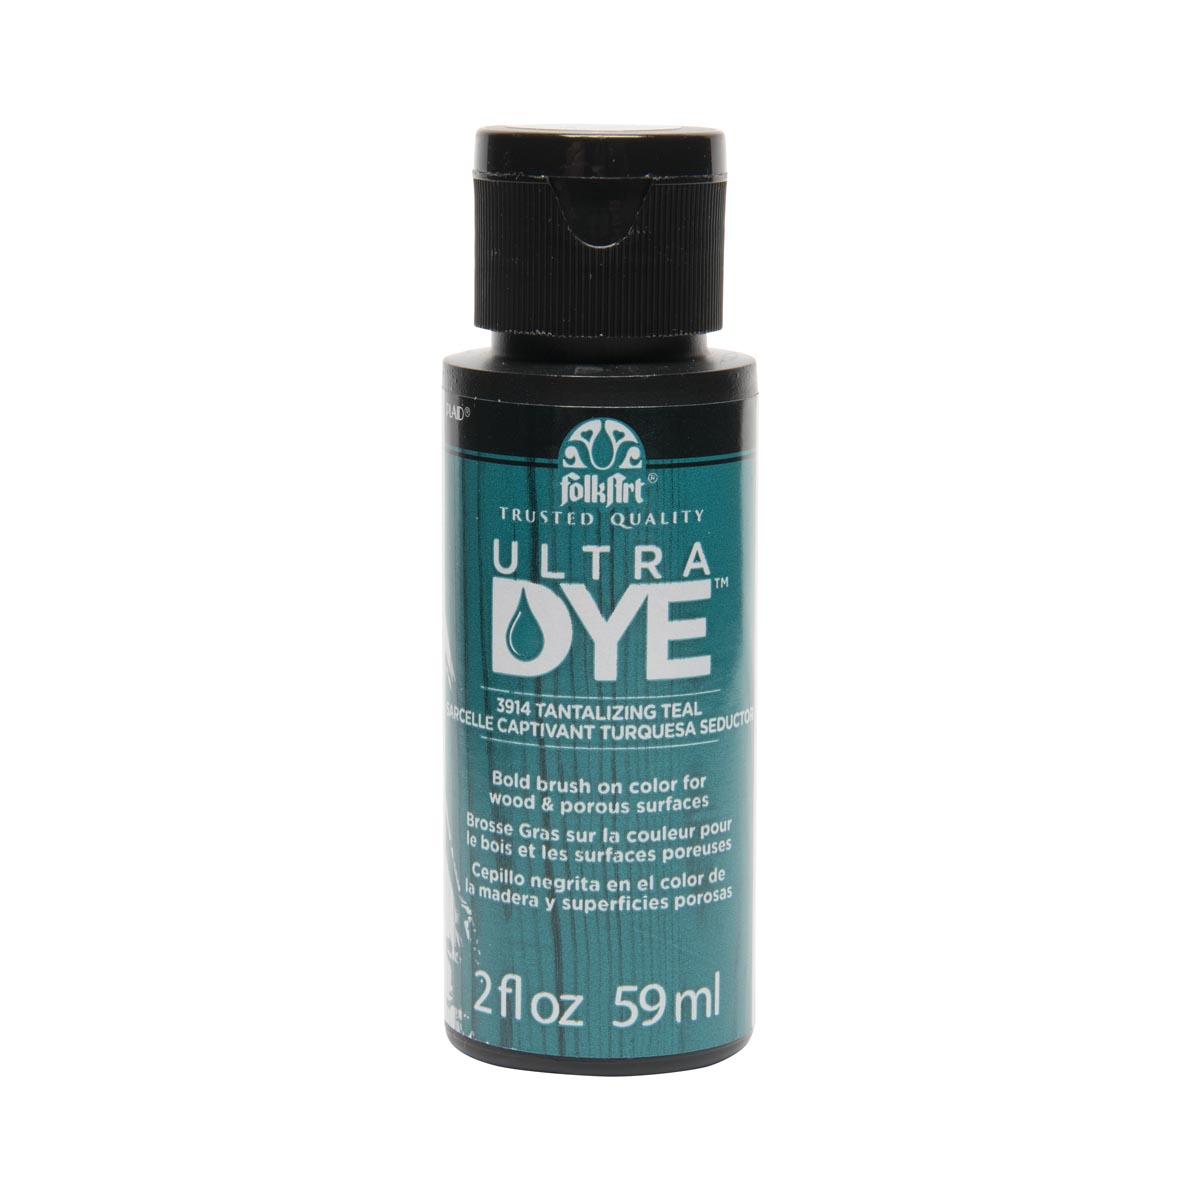 FolkArt ® Ultra Dye™ Colors - Tantalizing Teal, 2 oz.